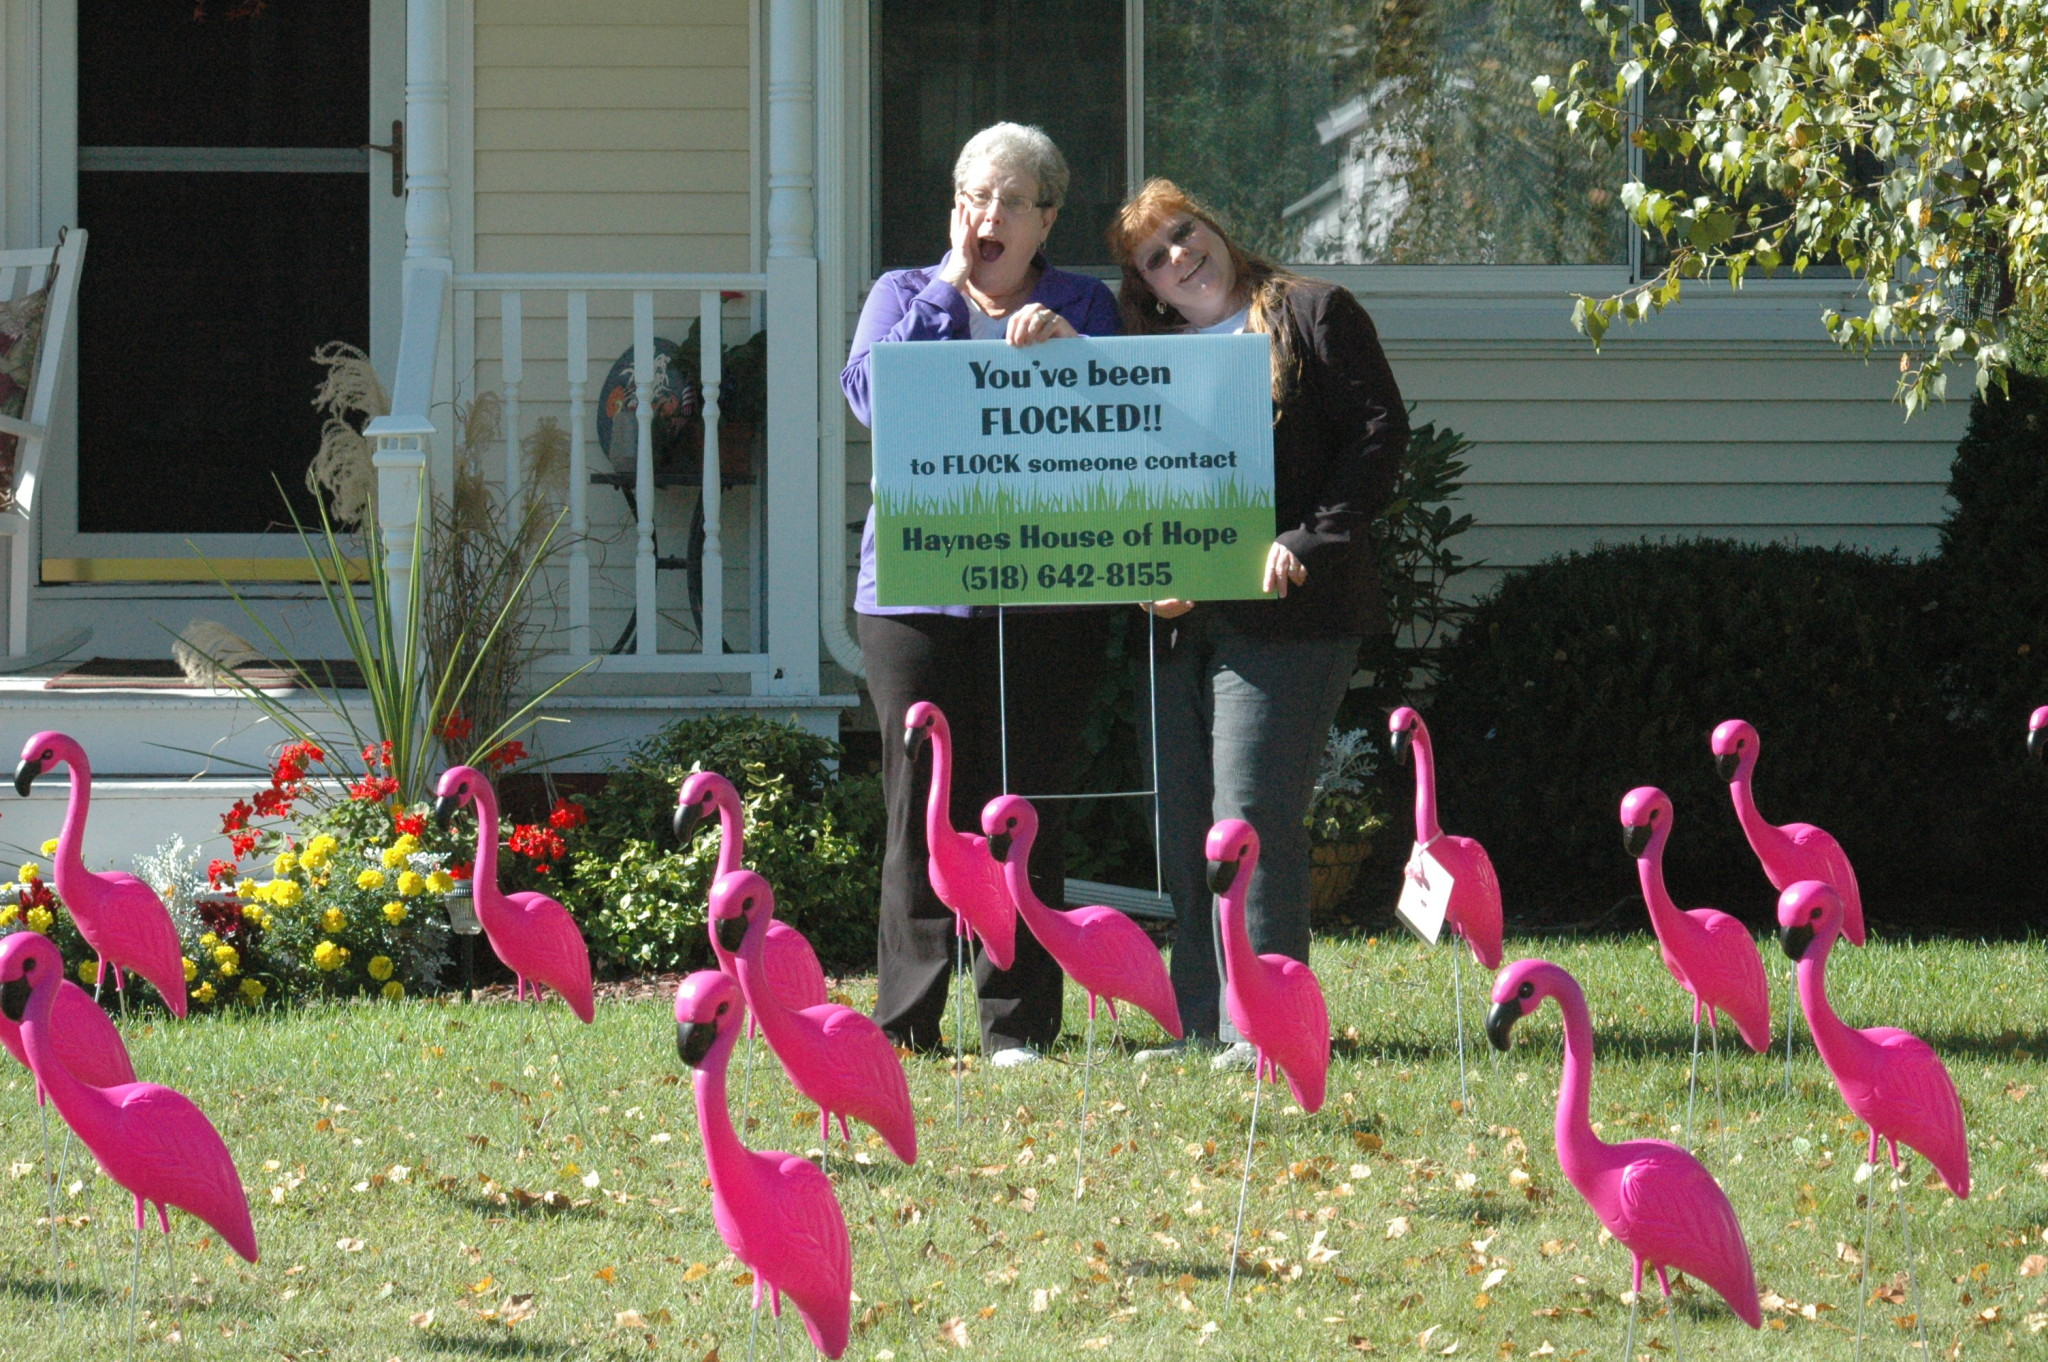 Flamingos fundraiser for Haynes House